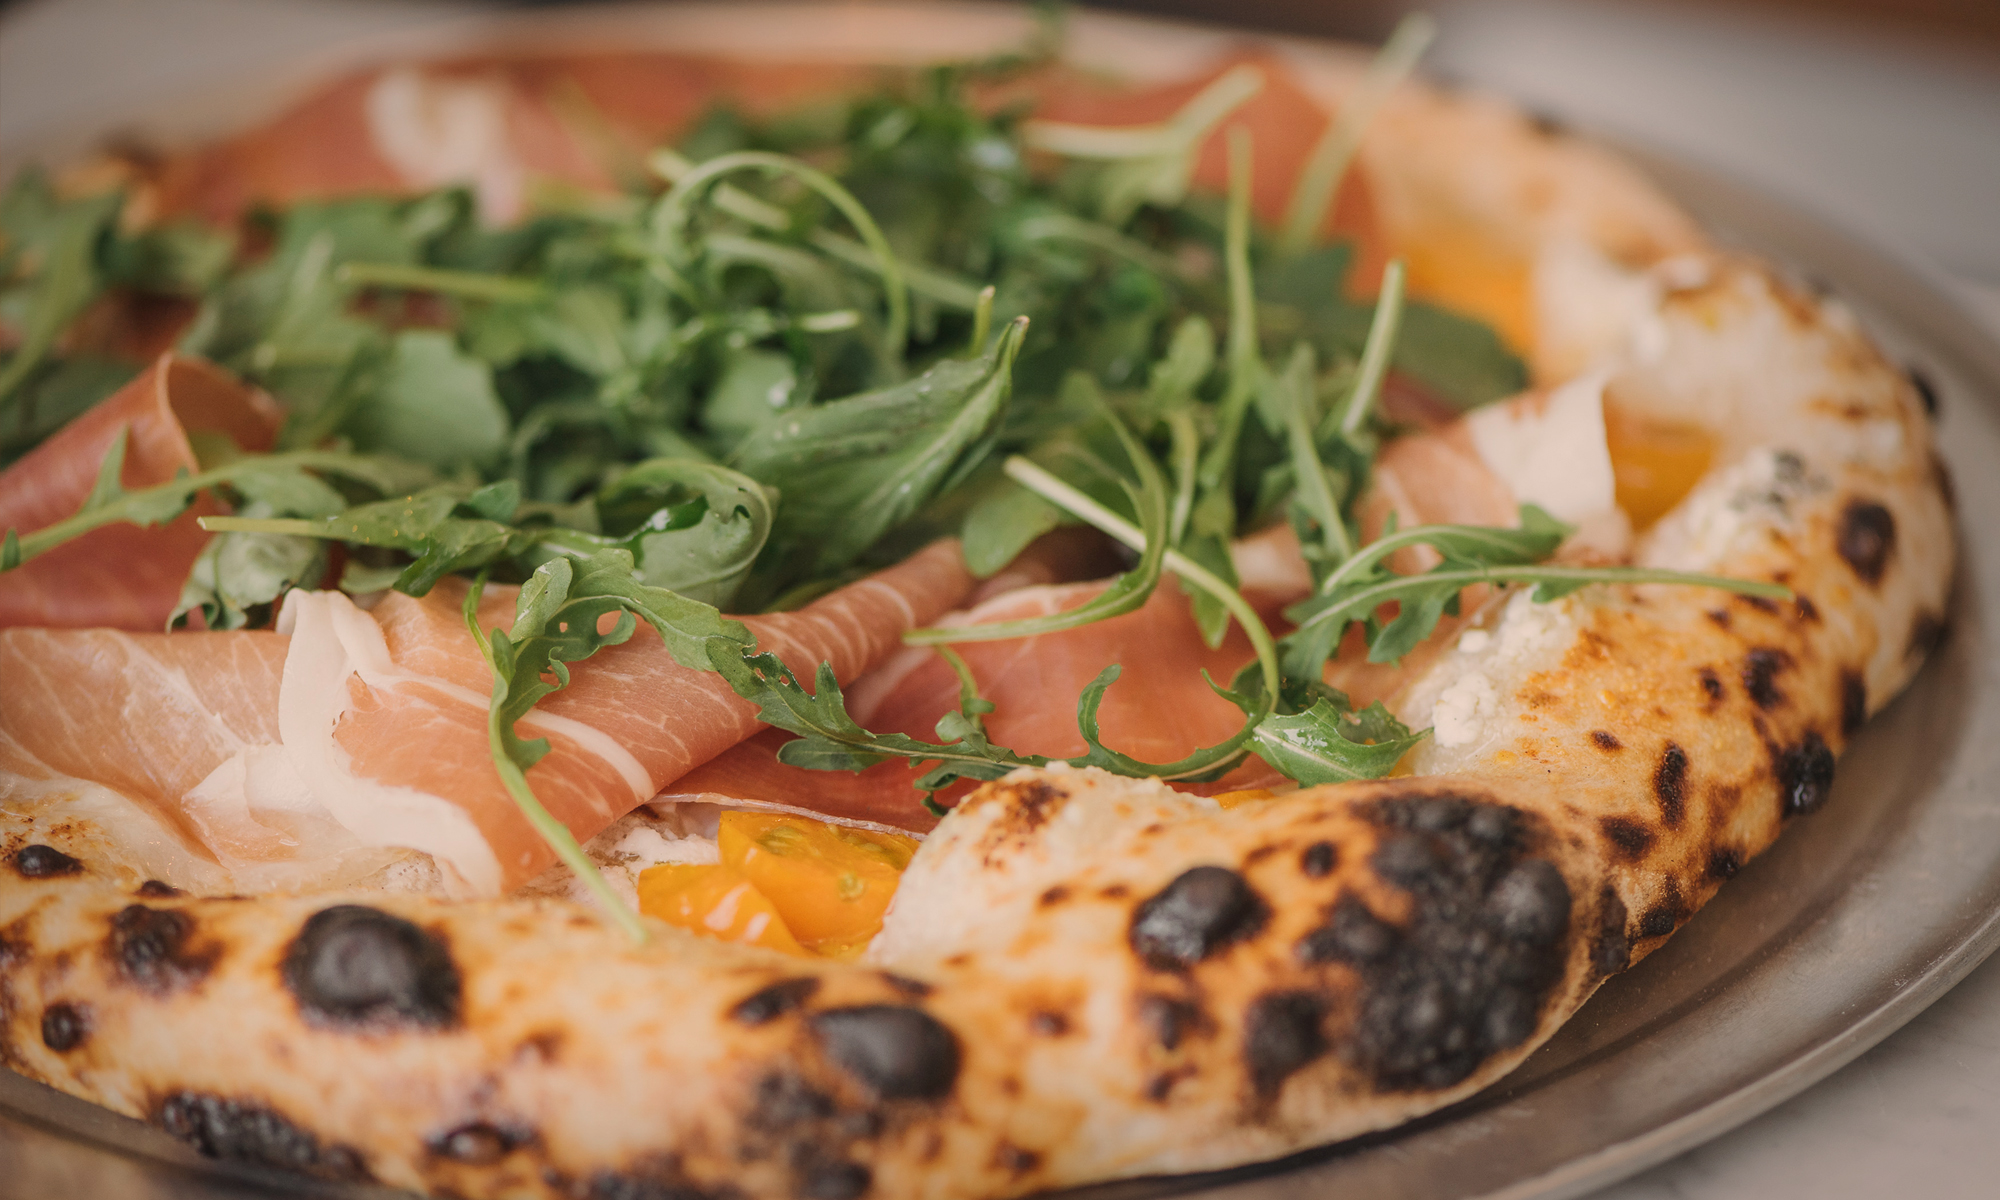 Photo of a prosciutto and arugula pizza